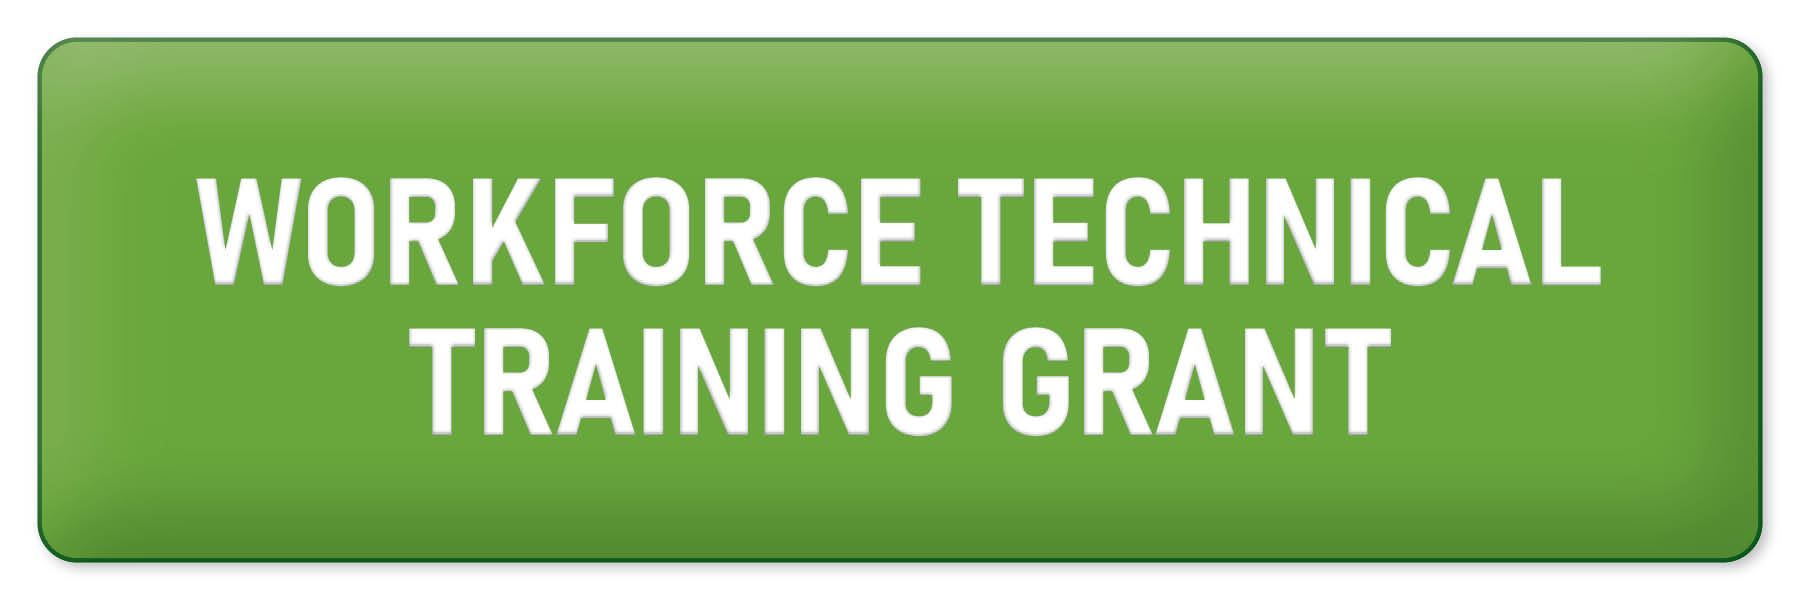 Workforce Technical Training Grant